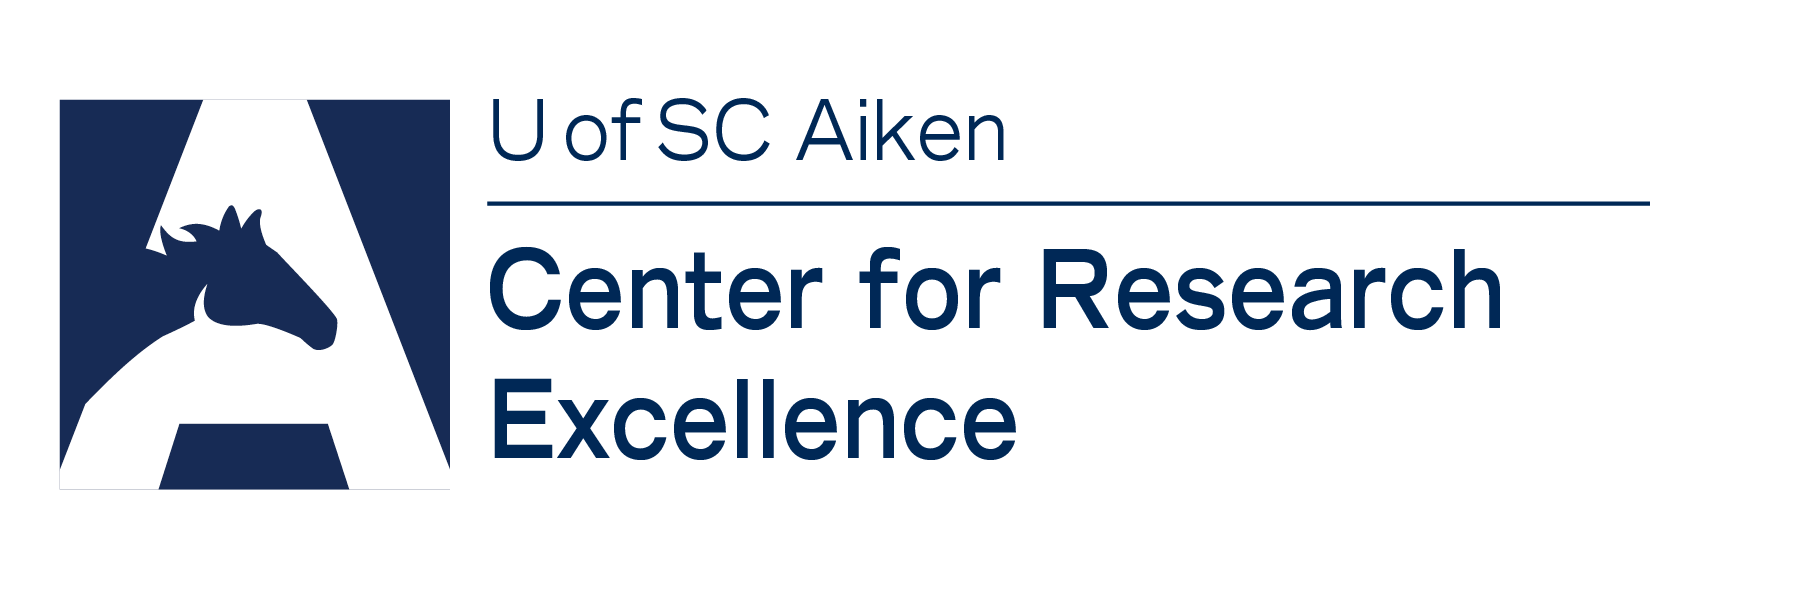 Center for Research Excellence logo